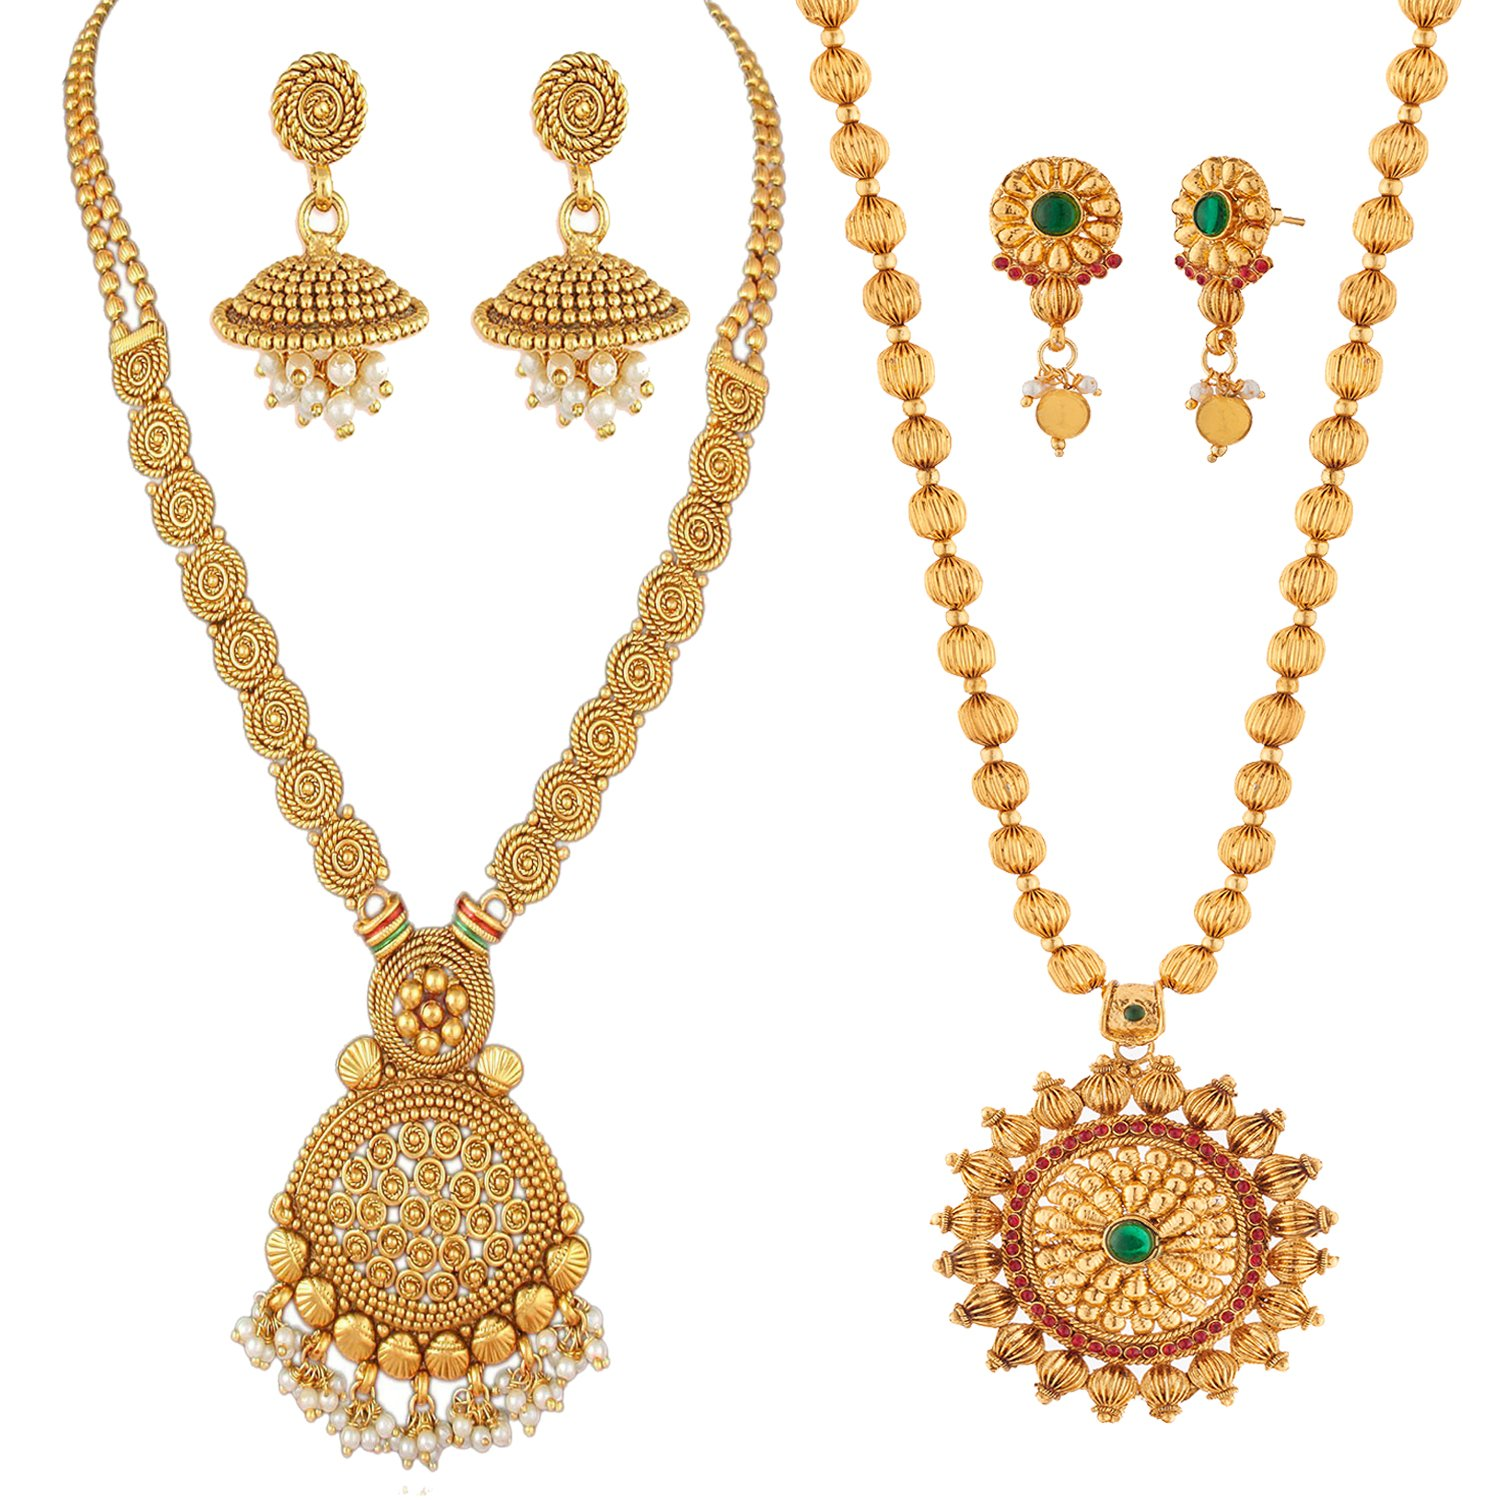 REEVA South Indian Gold-Plated Necklace and Earring Set for